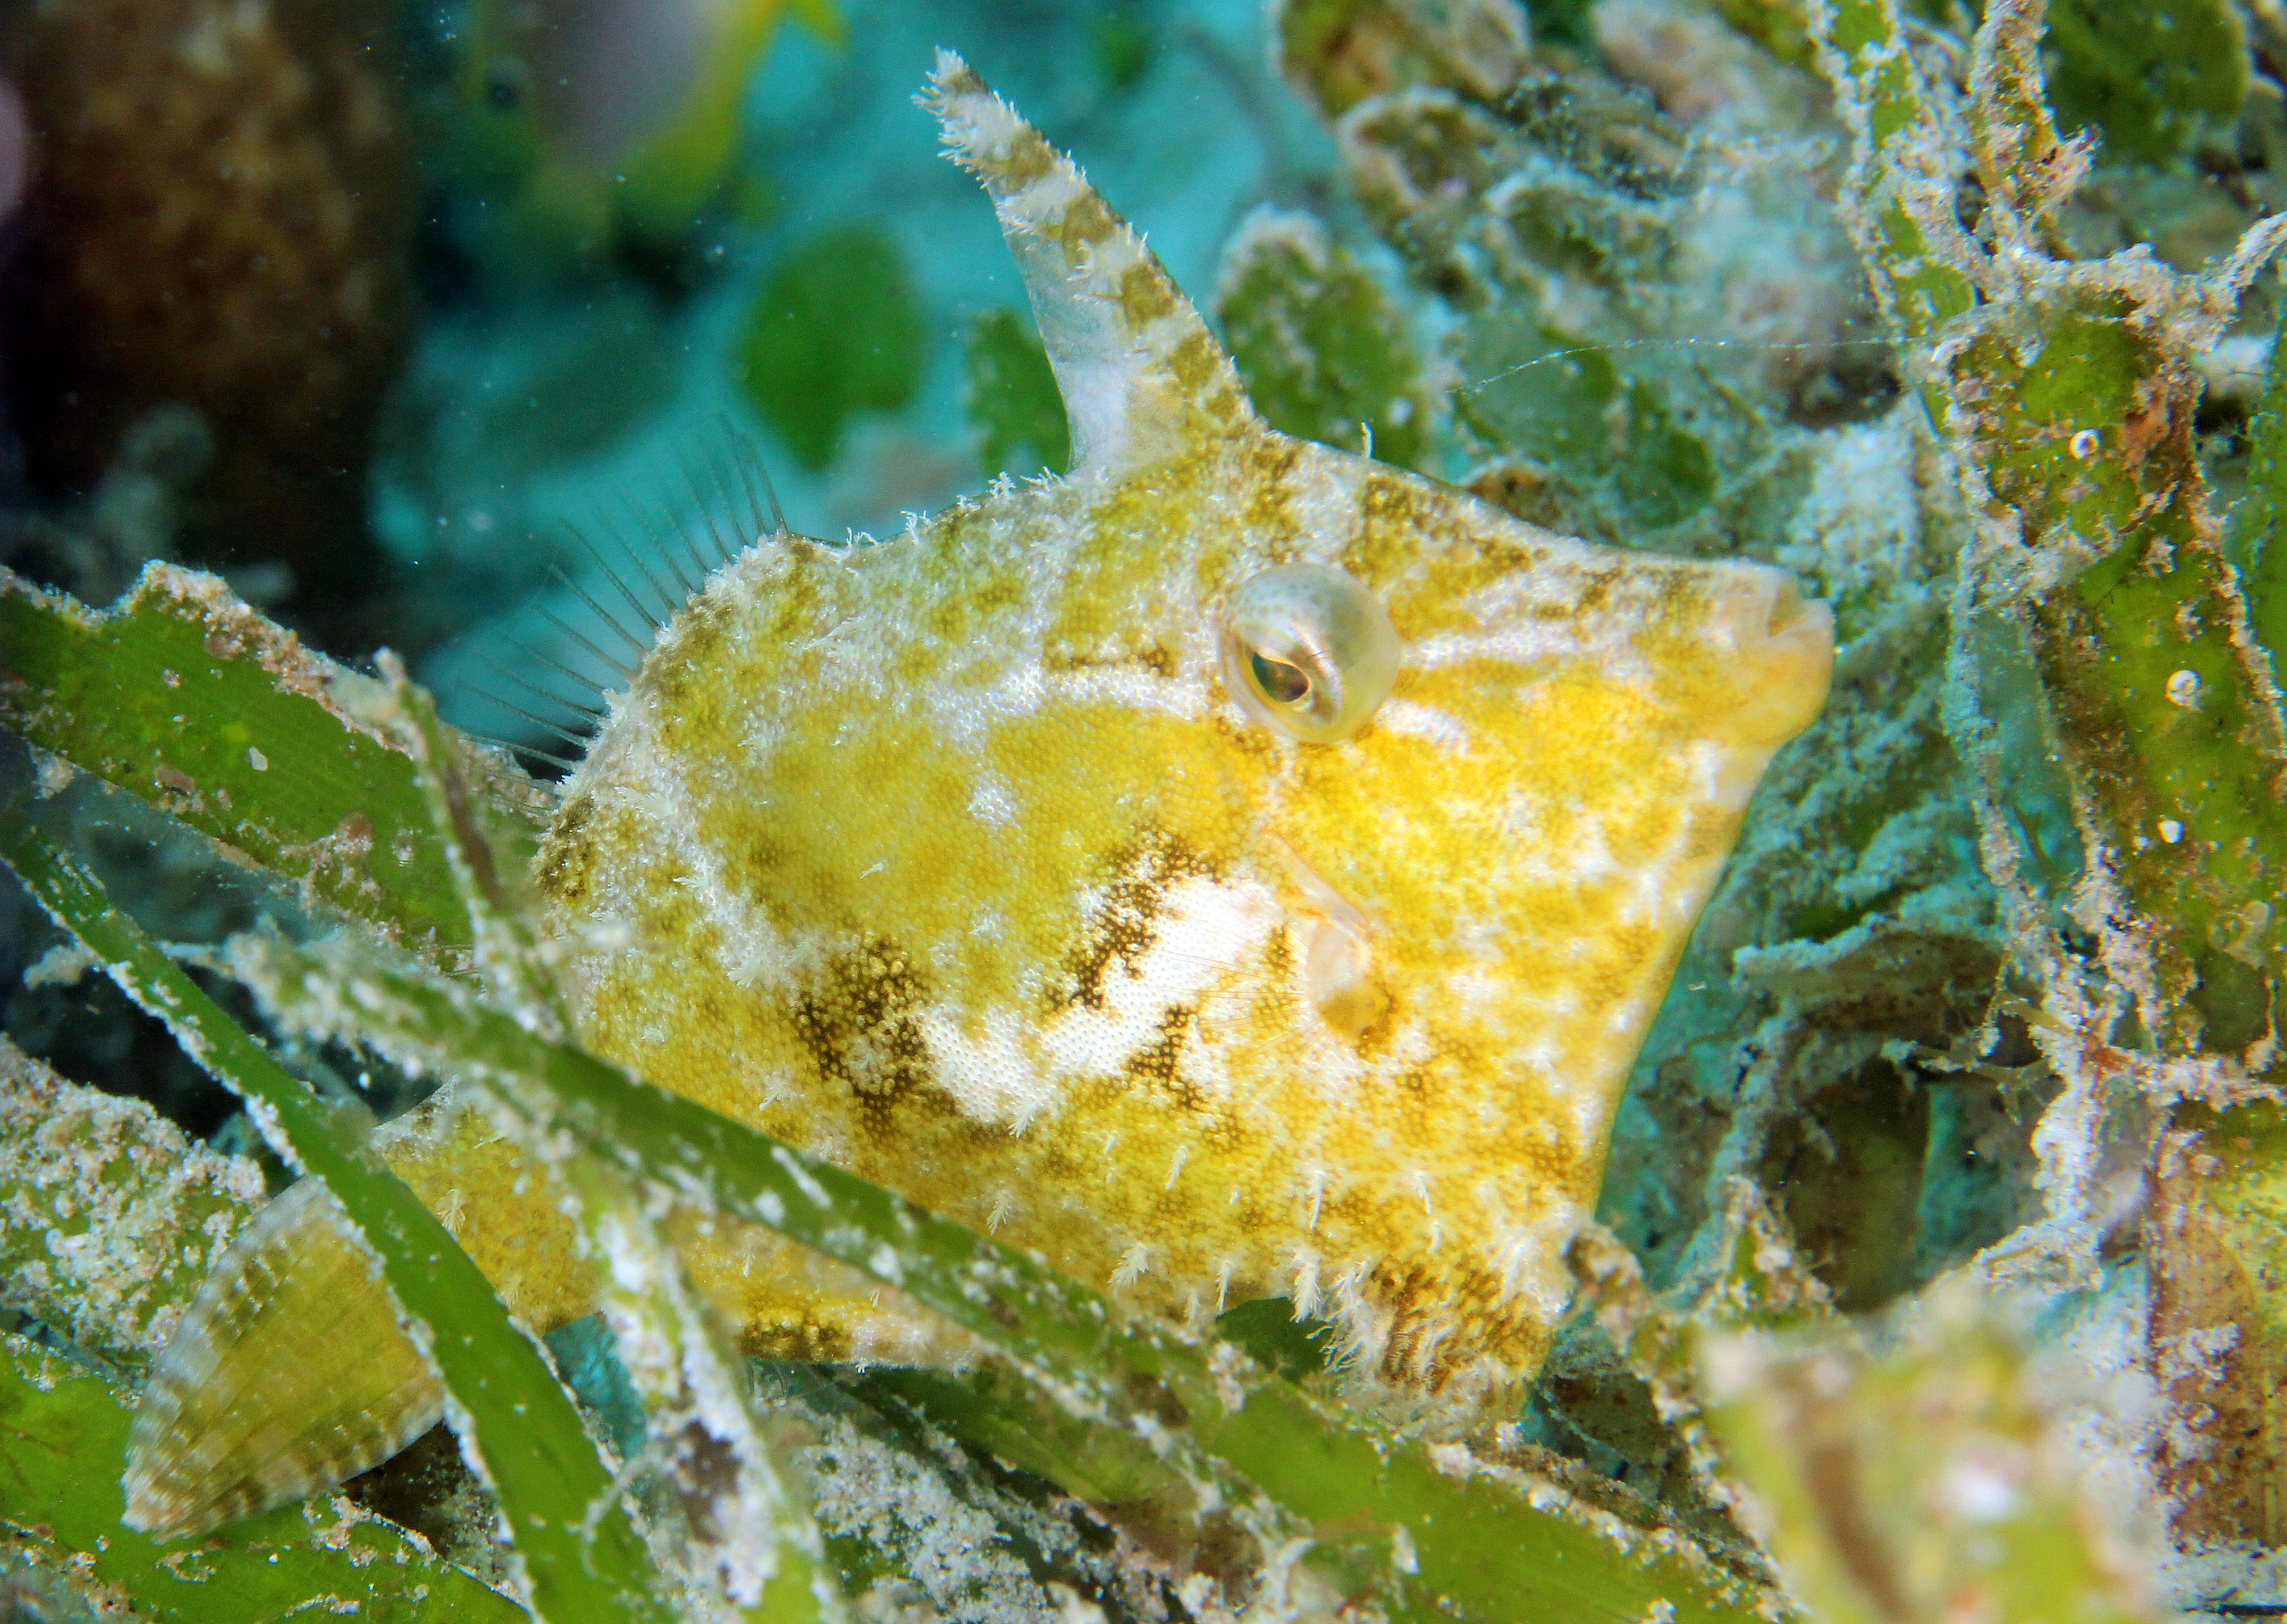 Bristle Tailed Filefish